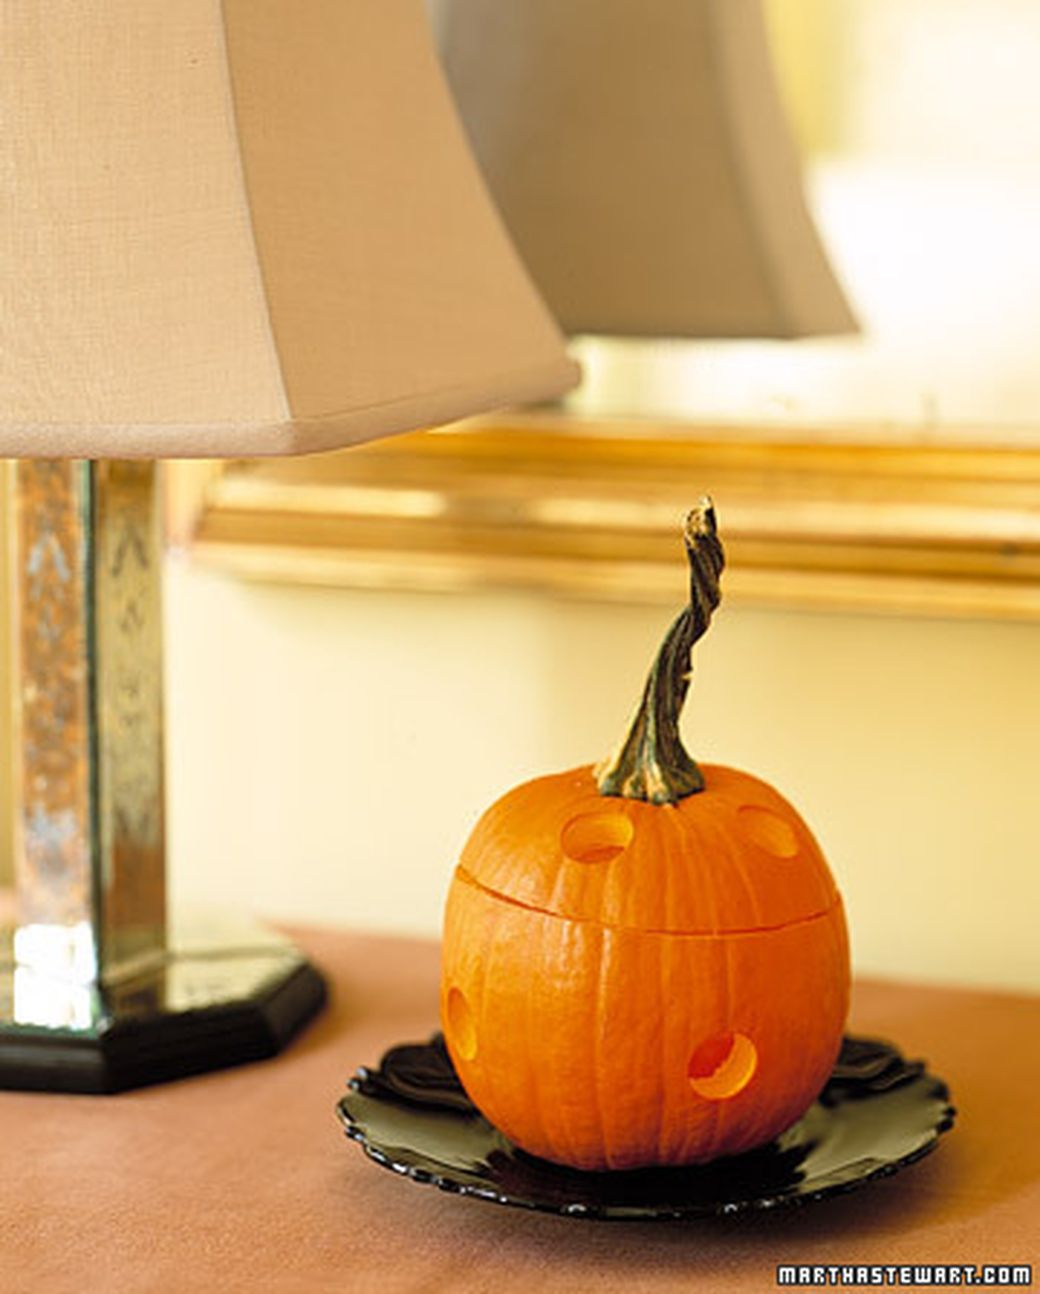 Pumpkin Pie Potpourri Incense burner, Incense and Pies - Diy Indoor Halloween Decorations